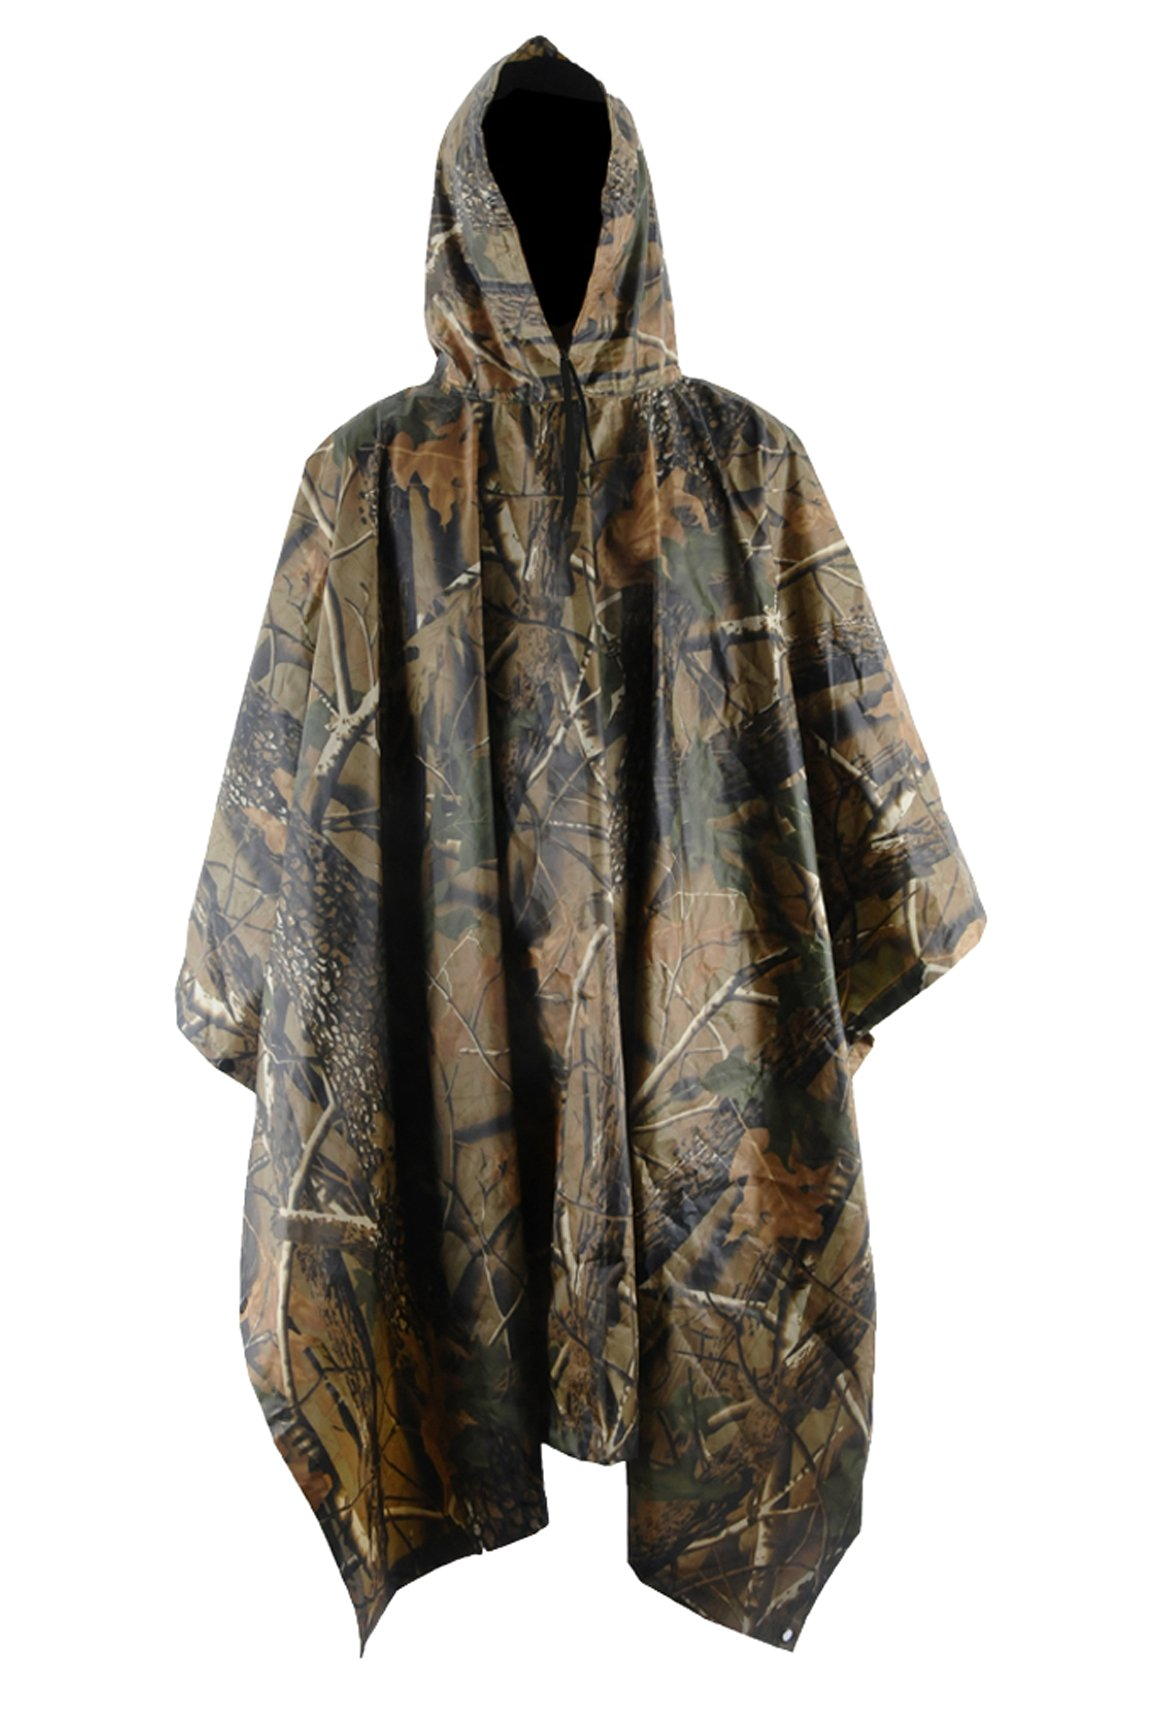 Unisex Militray Waterproof Raincoat Multi-Functional Rain Poncho, Hooded Ripstop Festival Rain Poncho Camouflage Raincoat for Hunting Camping and Outdoor Activities Maple Leaf Camo One Size by HOWON